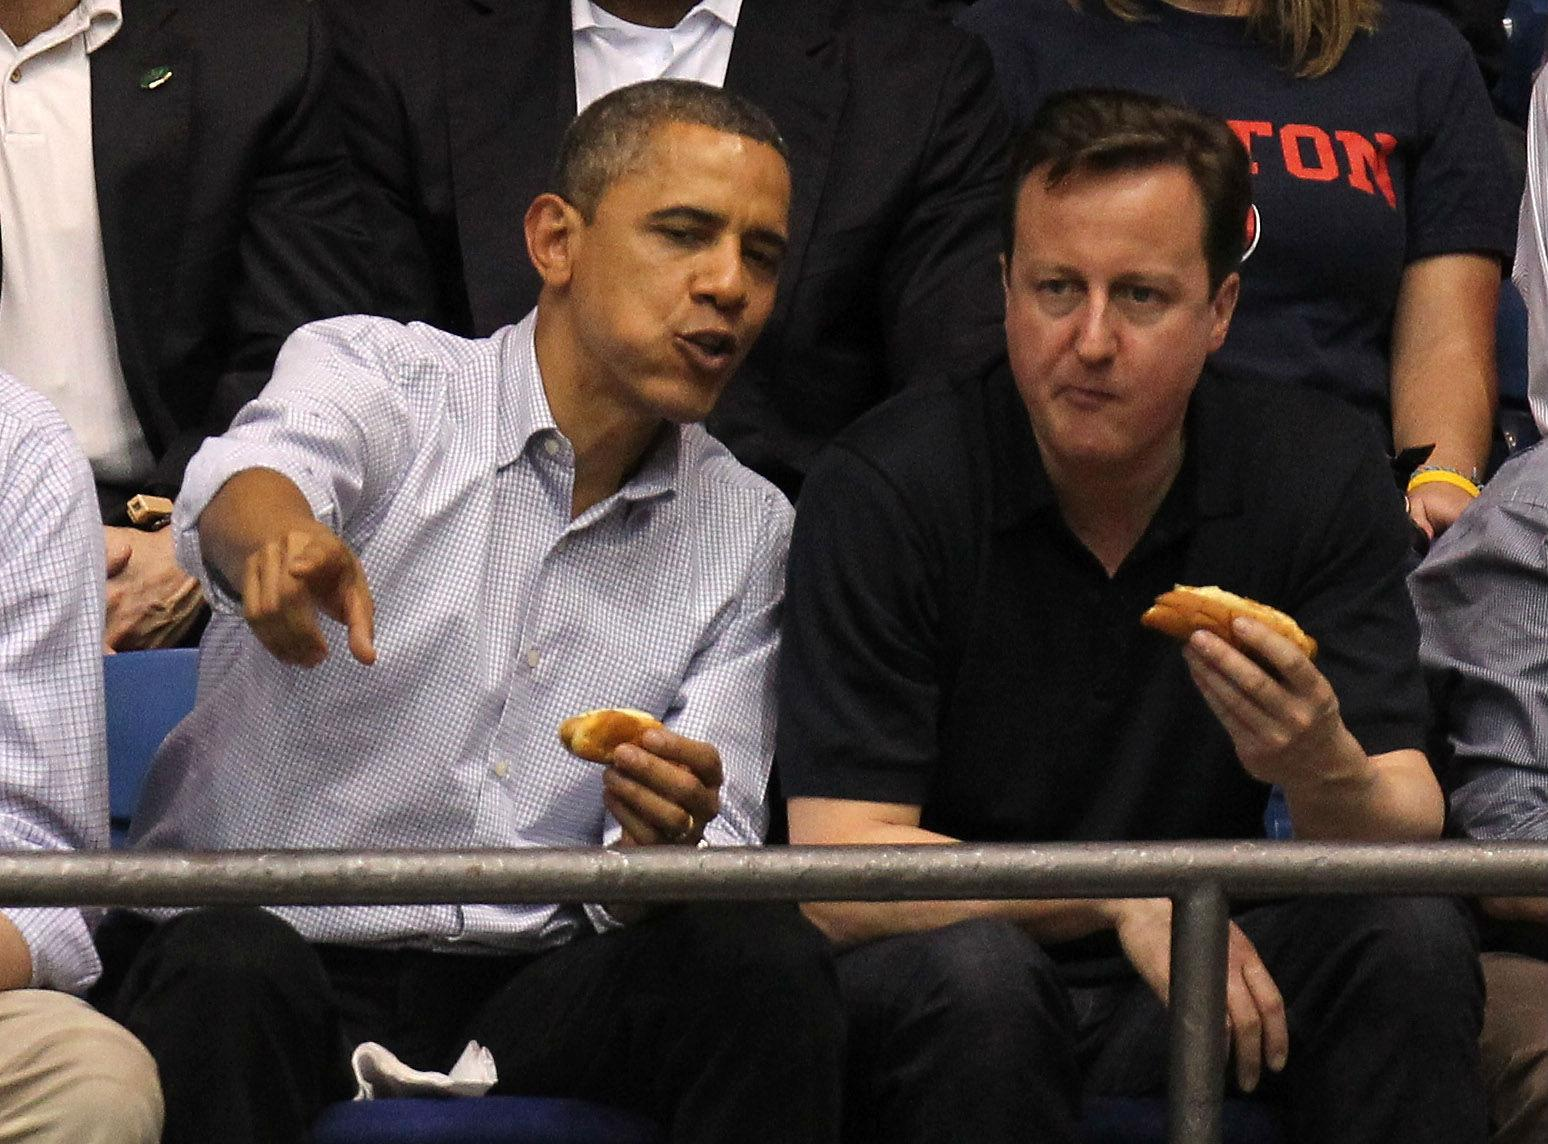 Cameron thought Obama one of the 'most narcissistic, self-absorbed people' he's met, says ex-aide